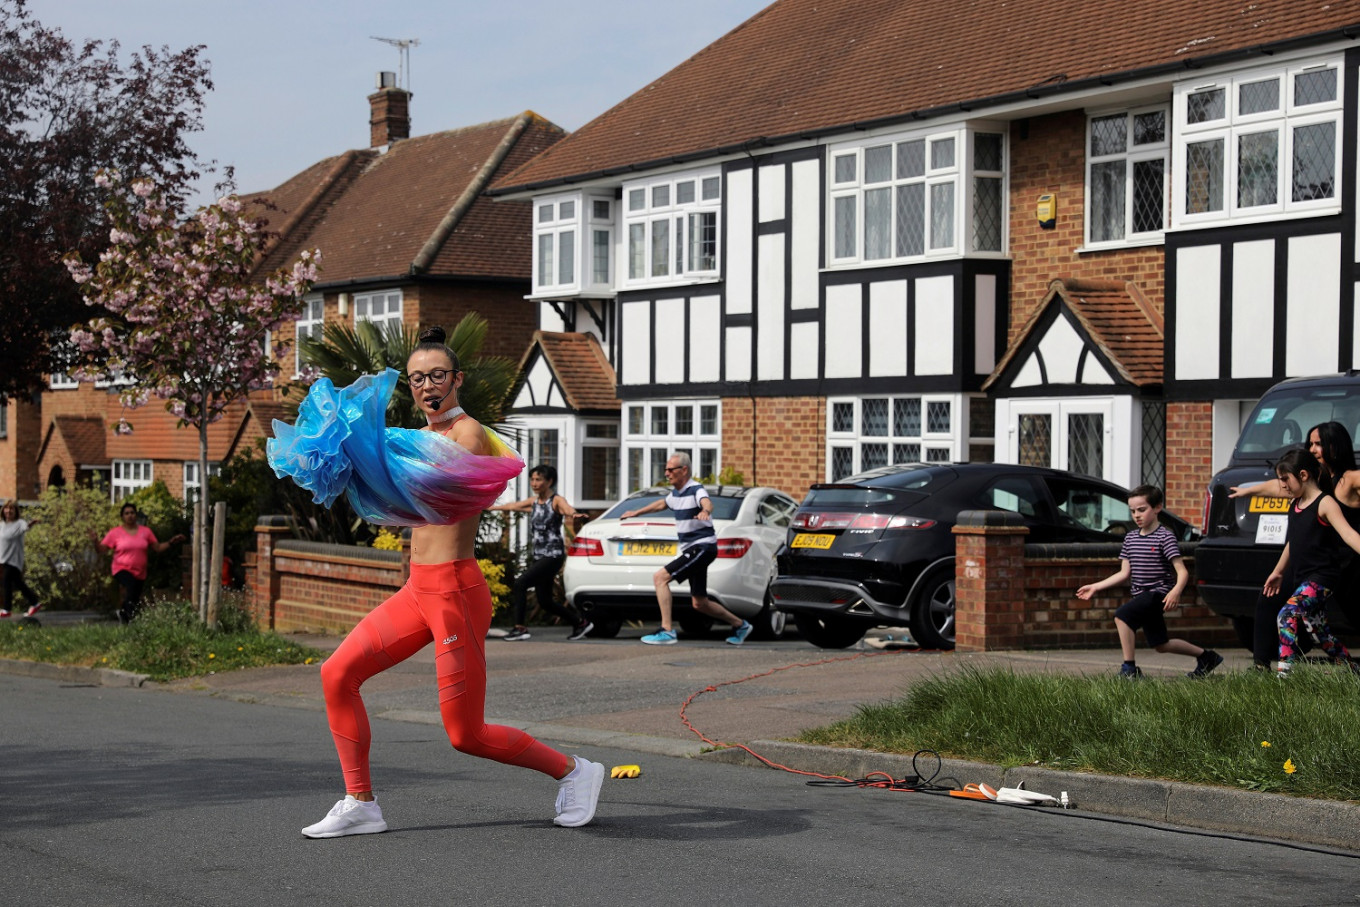 In lockdown Britain, 'Mancunian Motivator' brings fun and fitness to neighbors